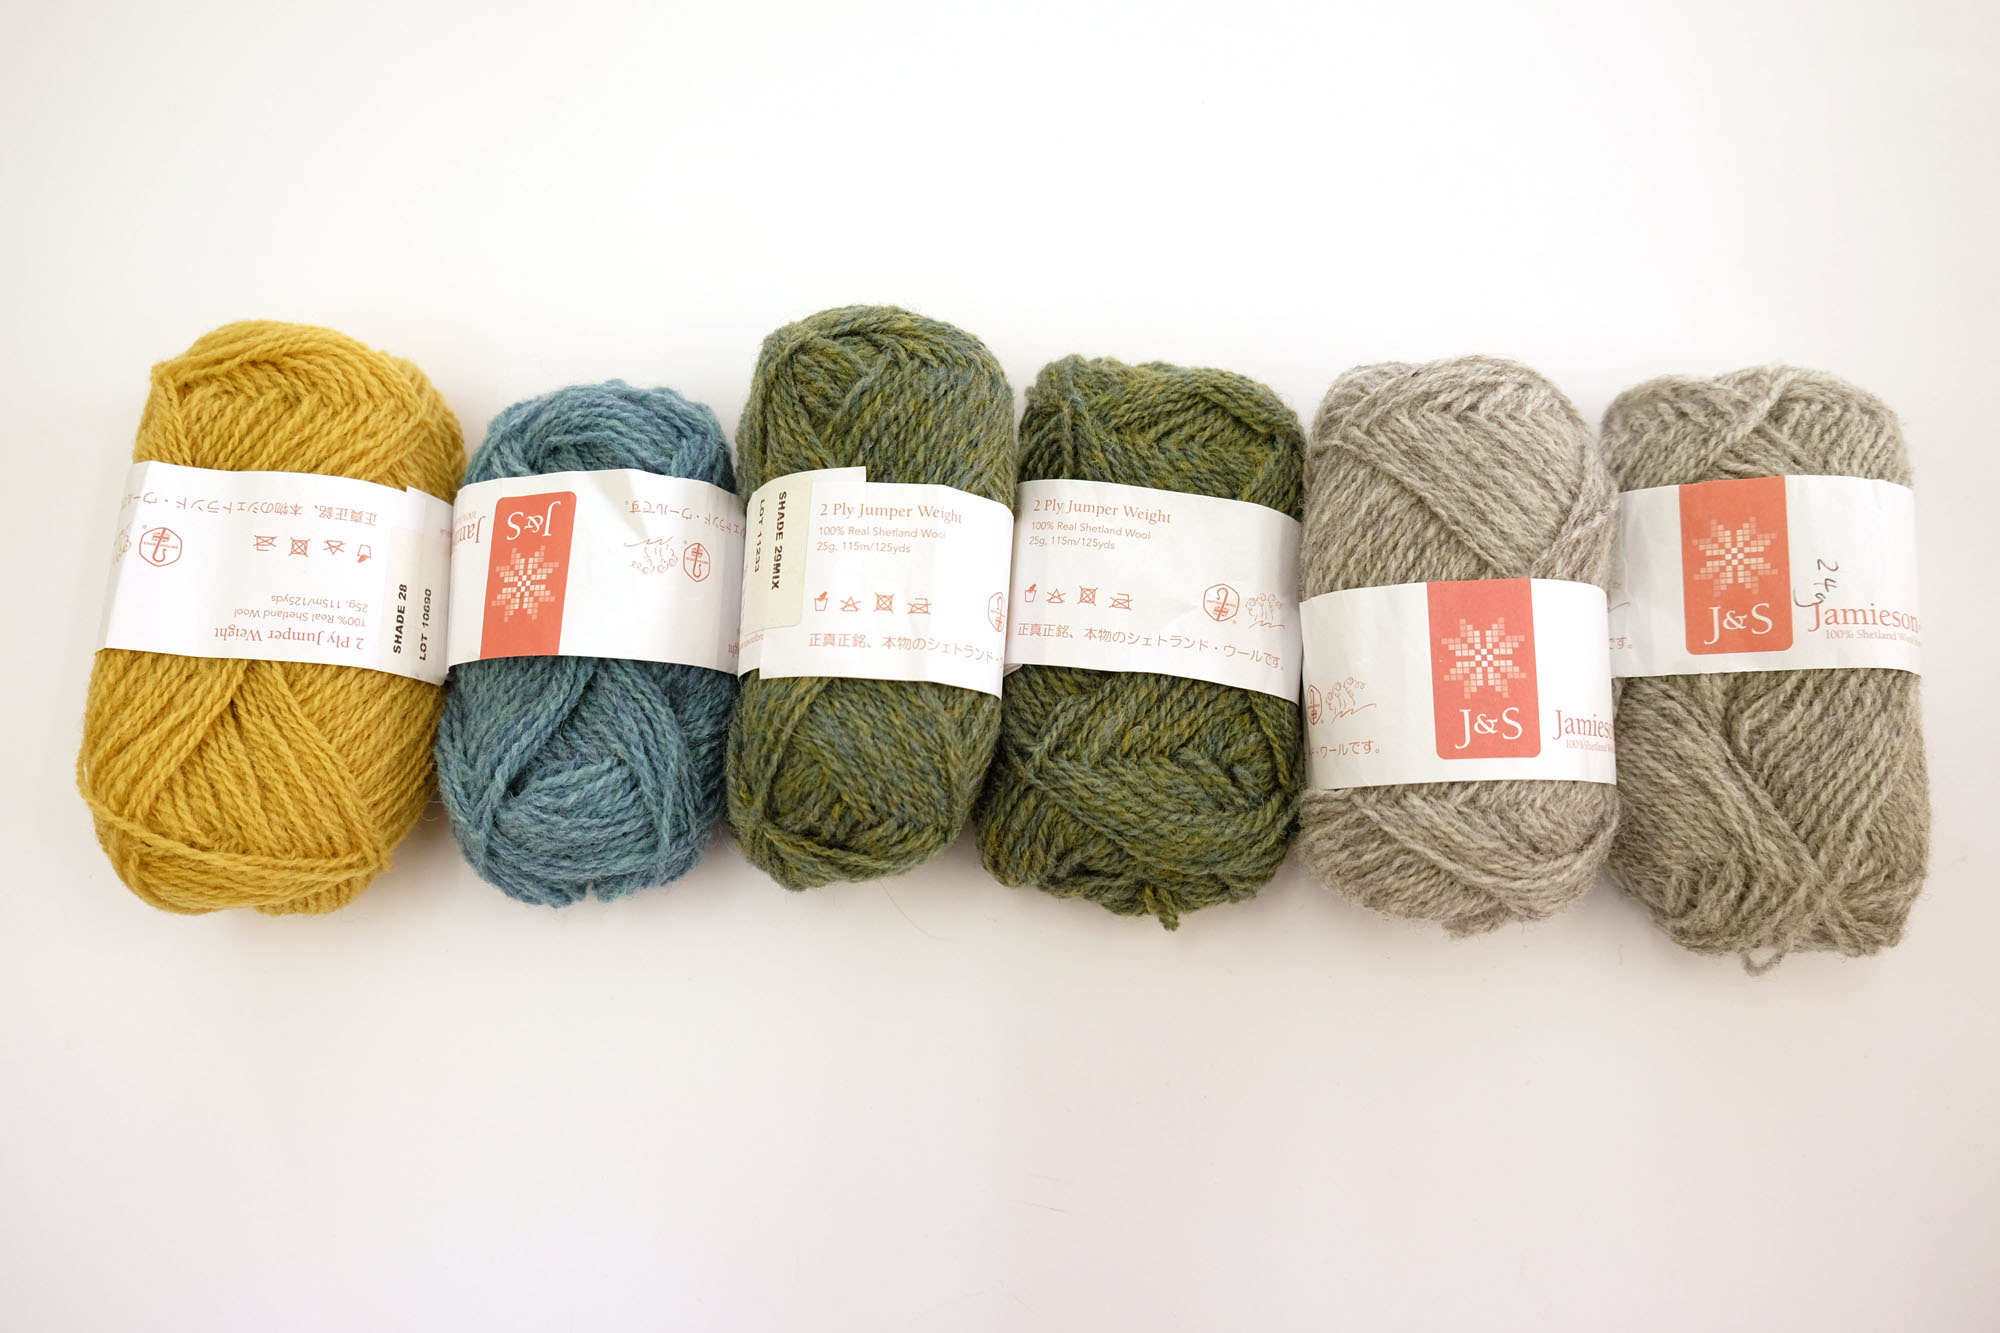 Left to right: J&S 2ply Jumper Weight in shades 28, FC34 mix, 29 mix and 203.